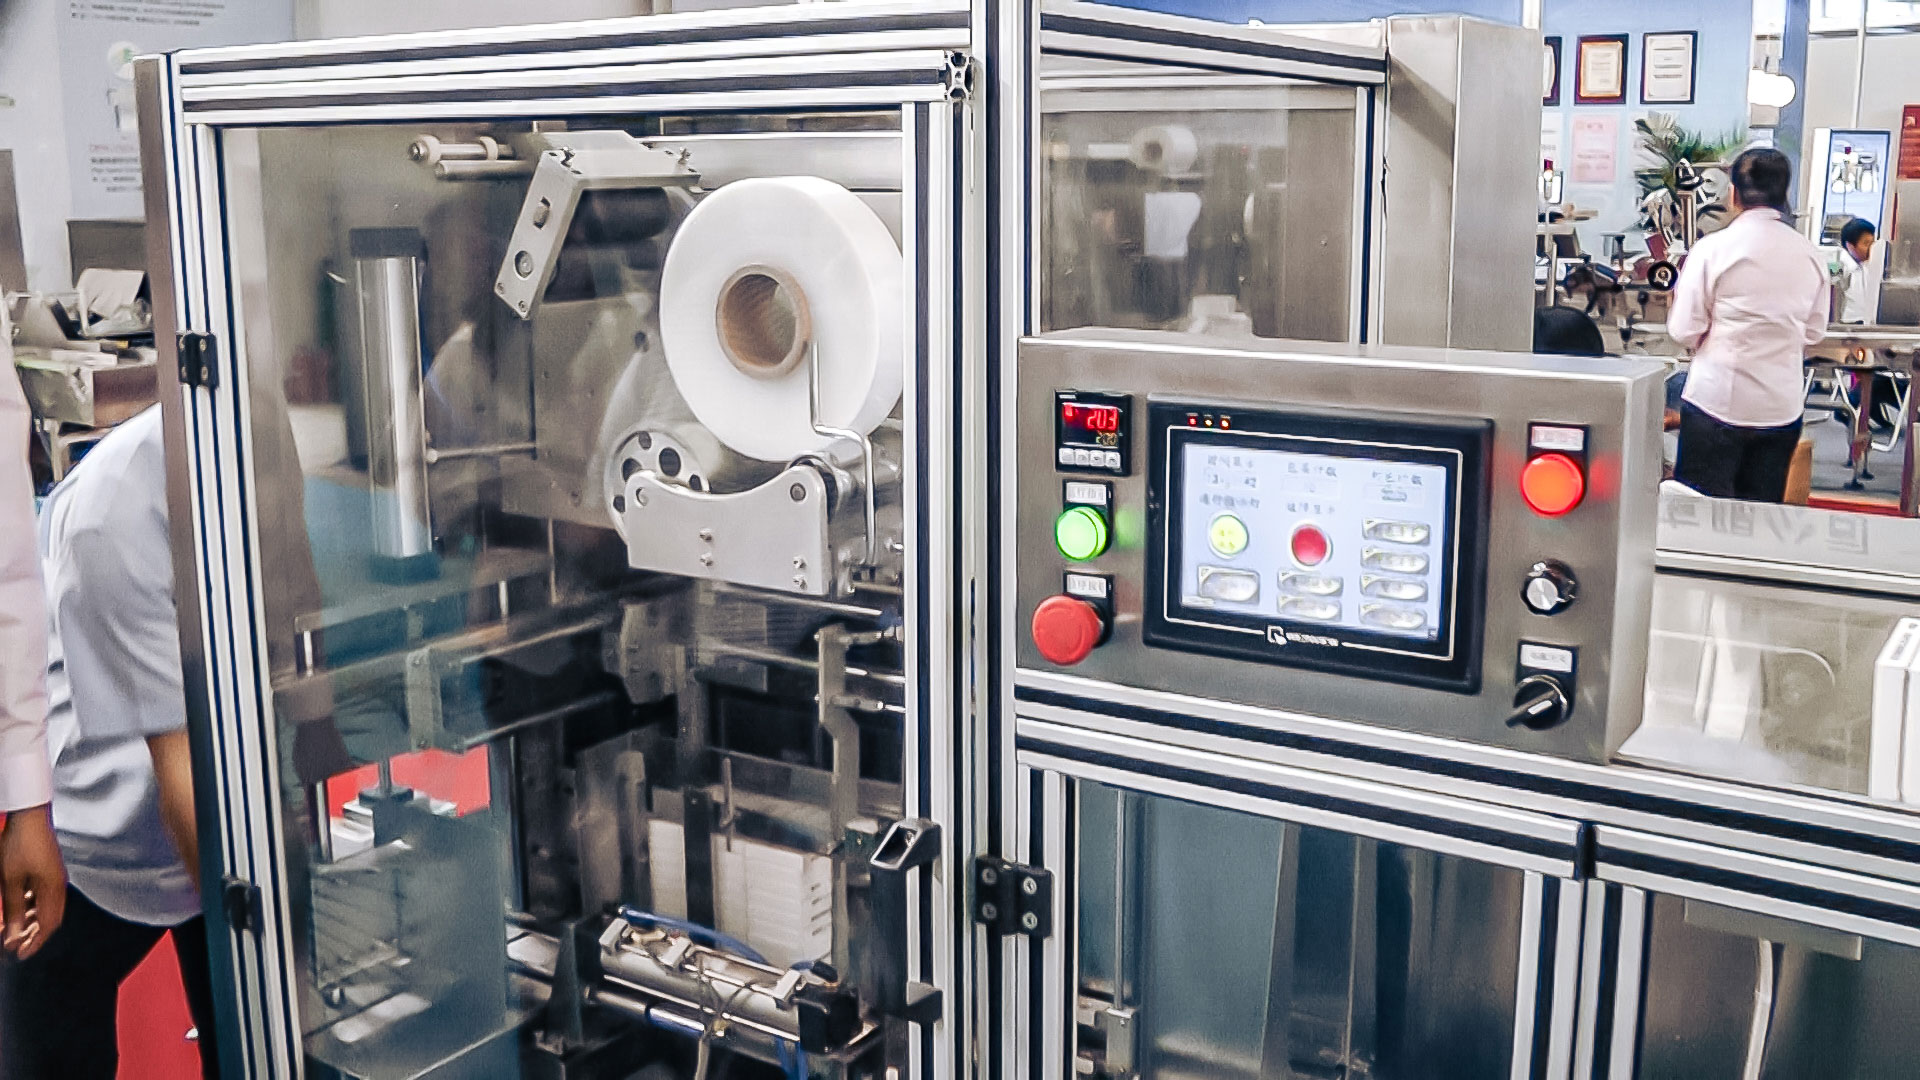 Automatic equipment cellophane box packaging in pharmaceutical production